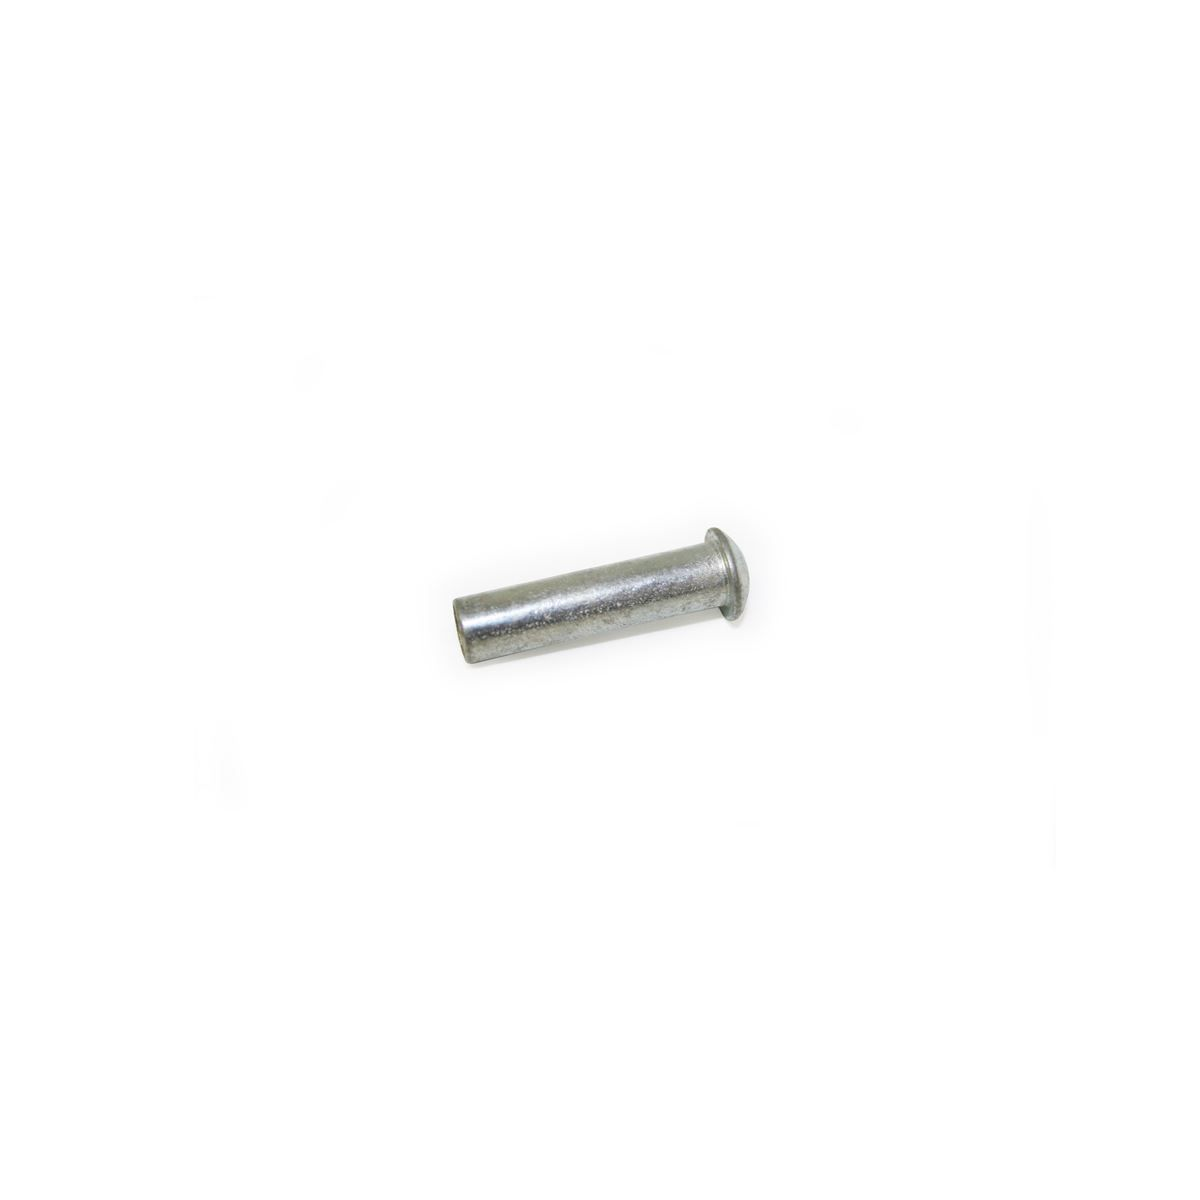 Tacx Spare - Foot Pivot Pin For Spider Team/Pro Work Stand (M5 X 28):